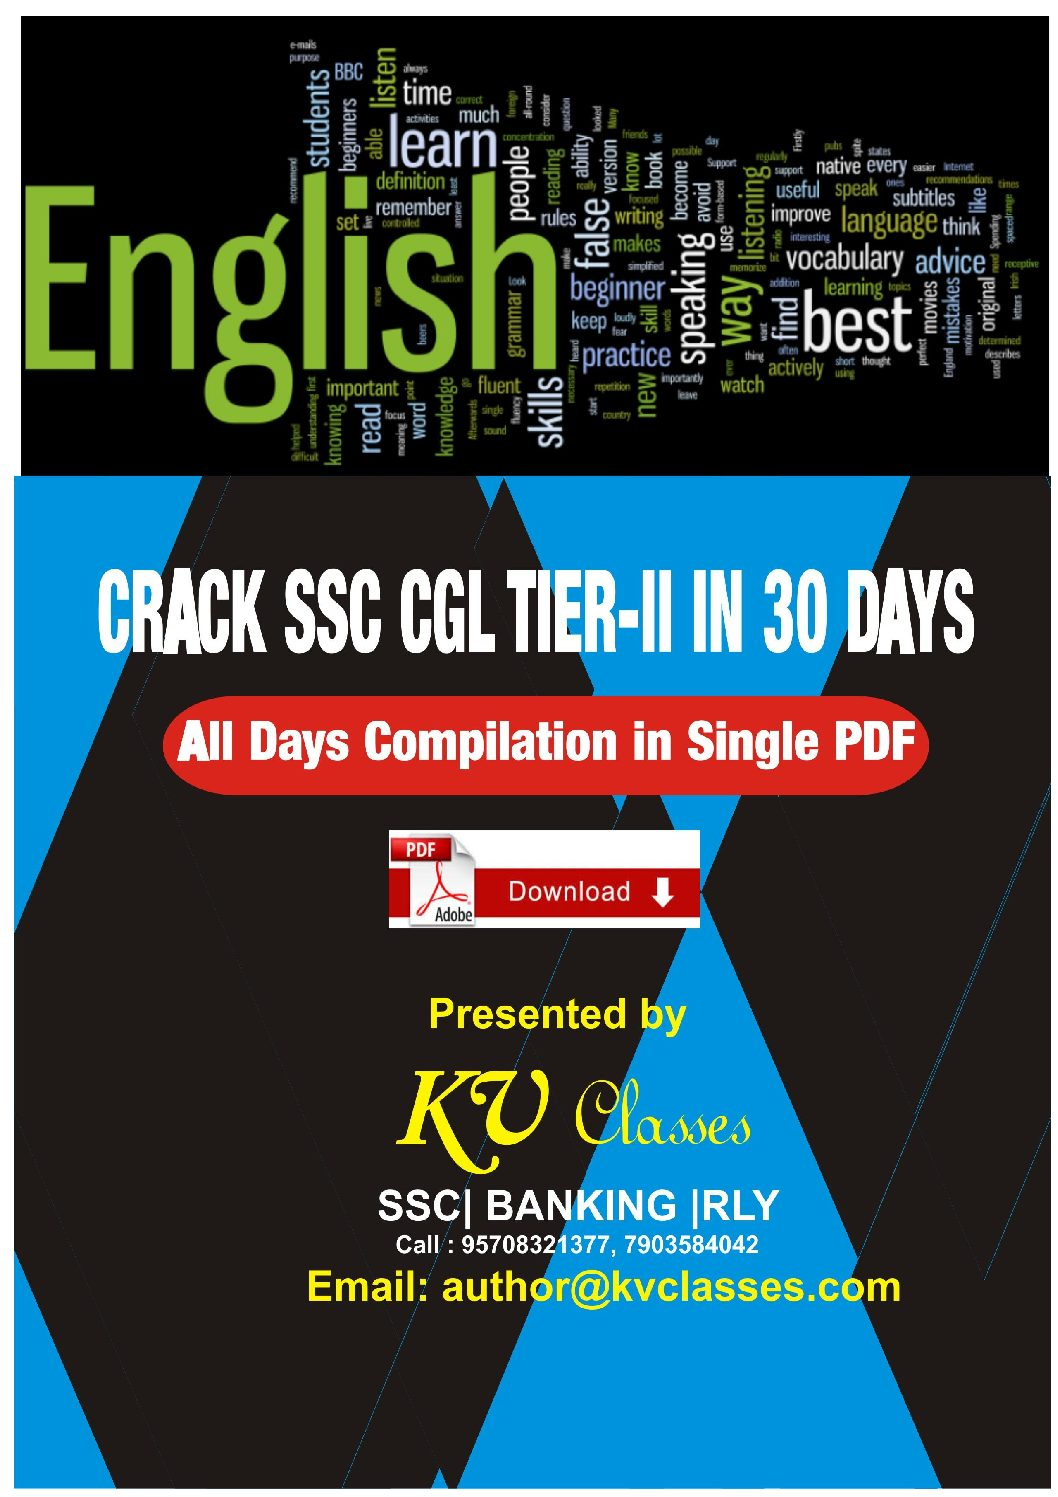 Crack SSC CGL 2017 TIER-II All 30 Days Compilation in Single PDF